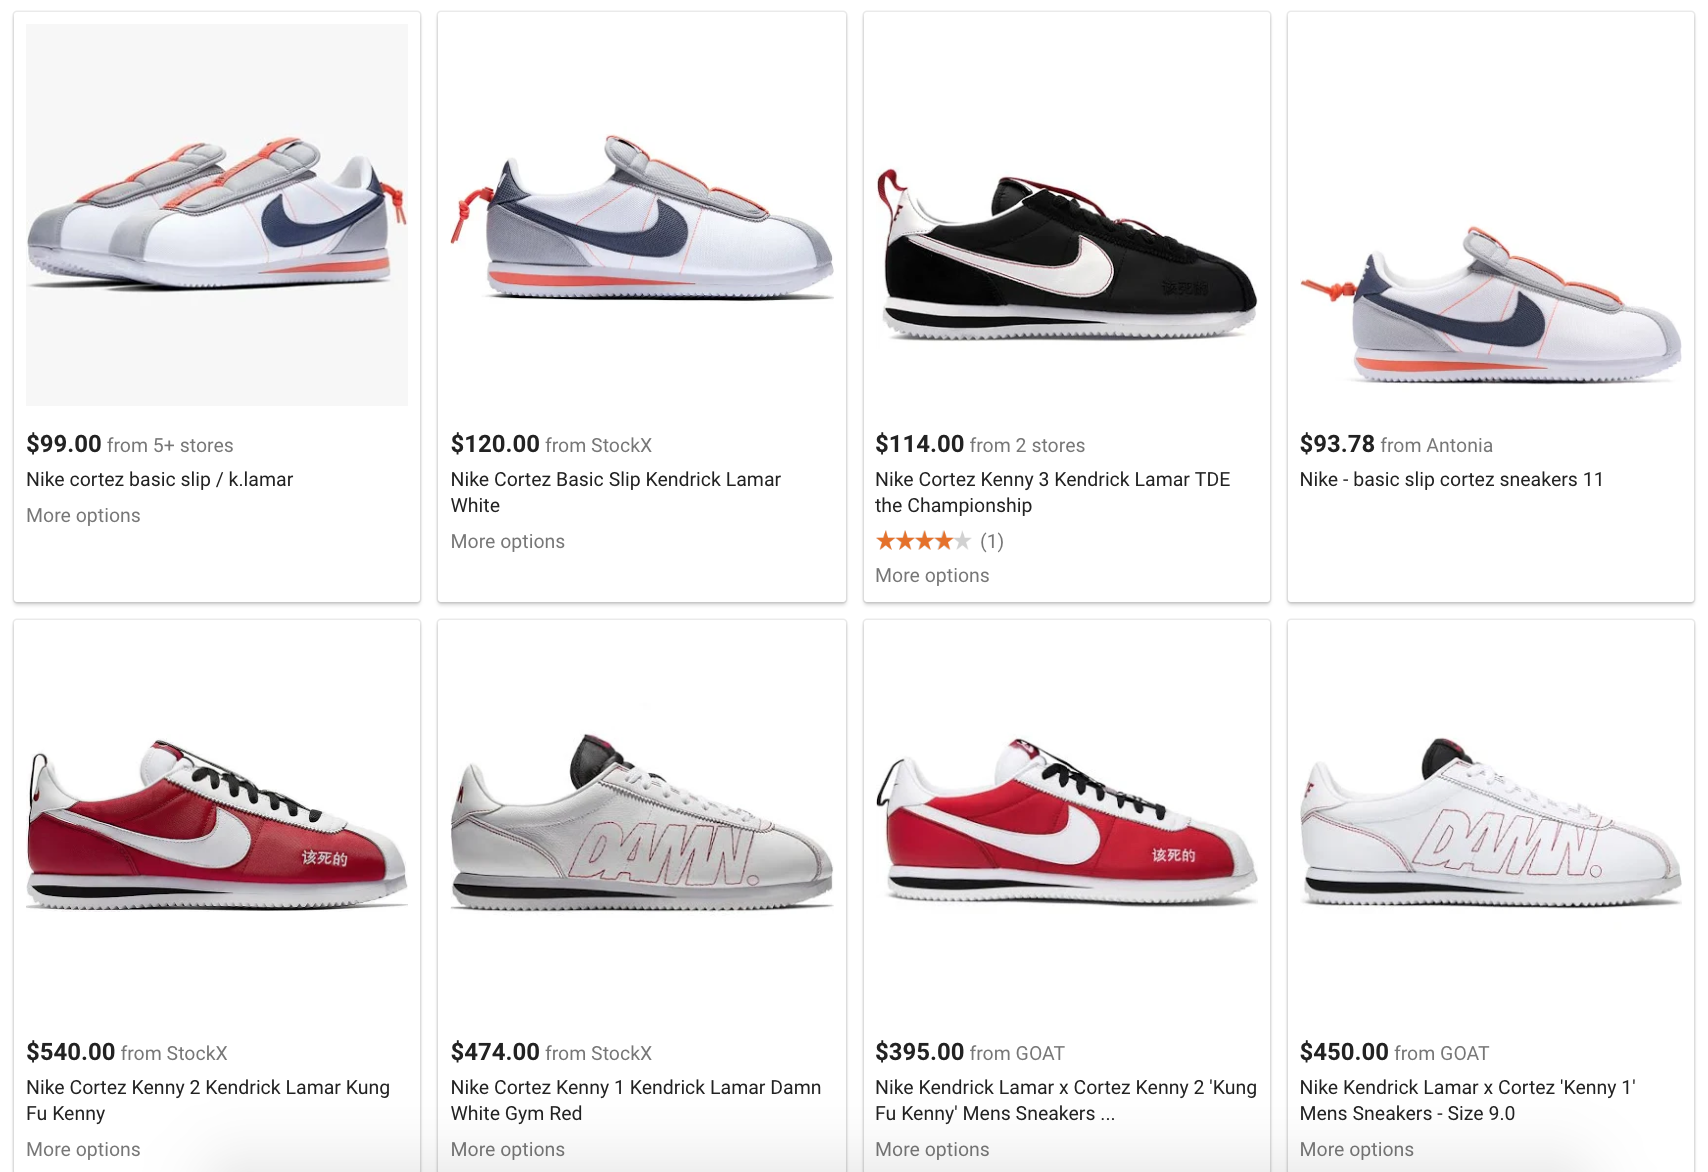 621f1a9d Google Shopping Results for Nike Cortez Kendrick Lamar